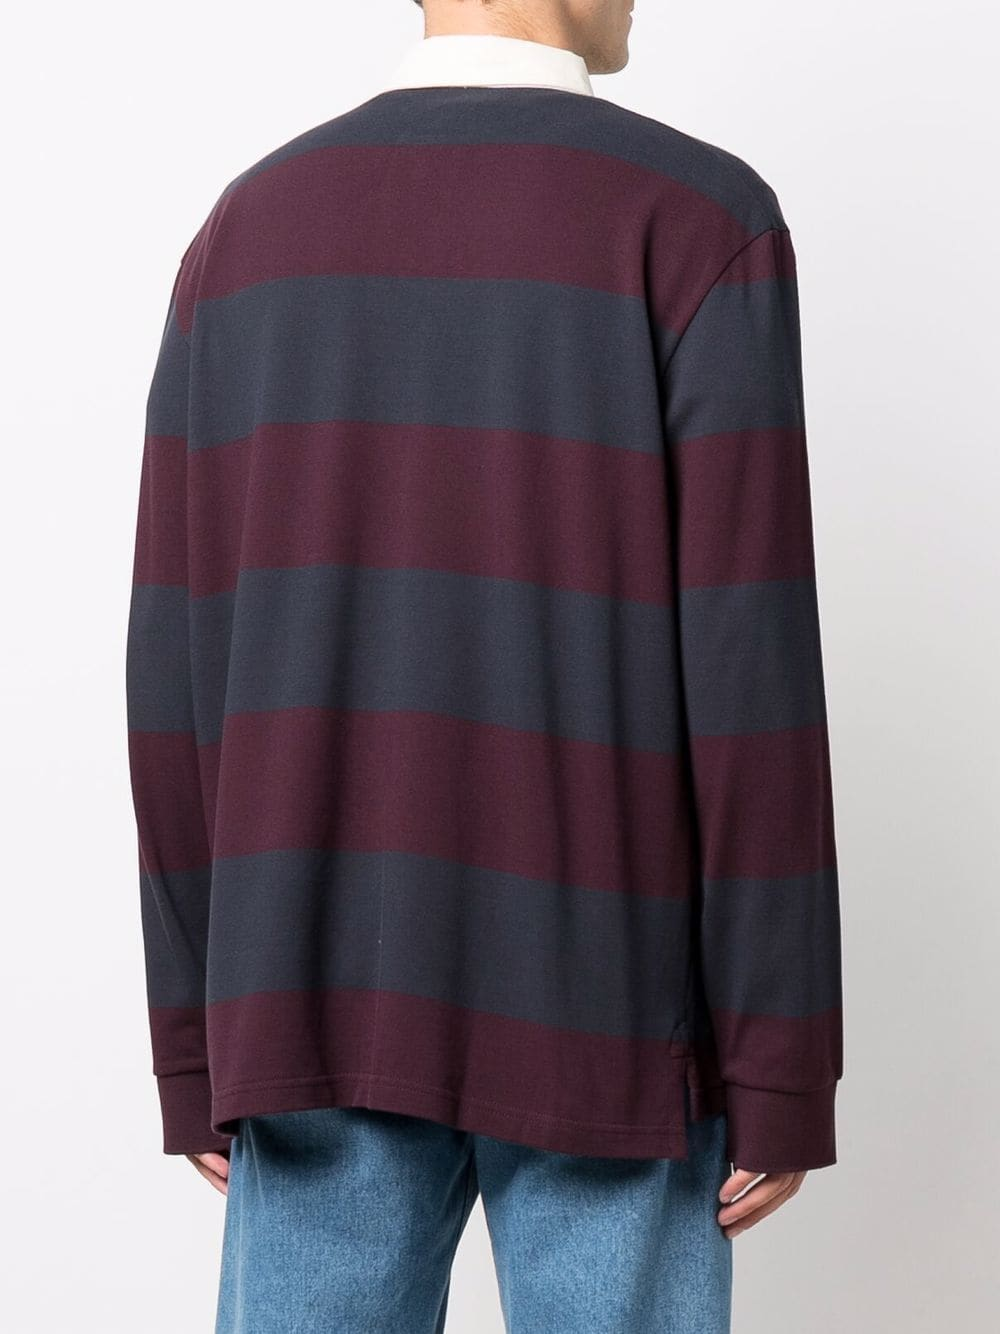 arno polo man multicolor in cotton ISABEL MARANT |  | 21APL0007-21A038H02FK